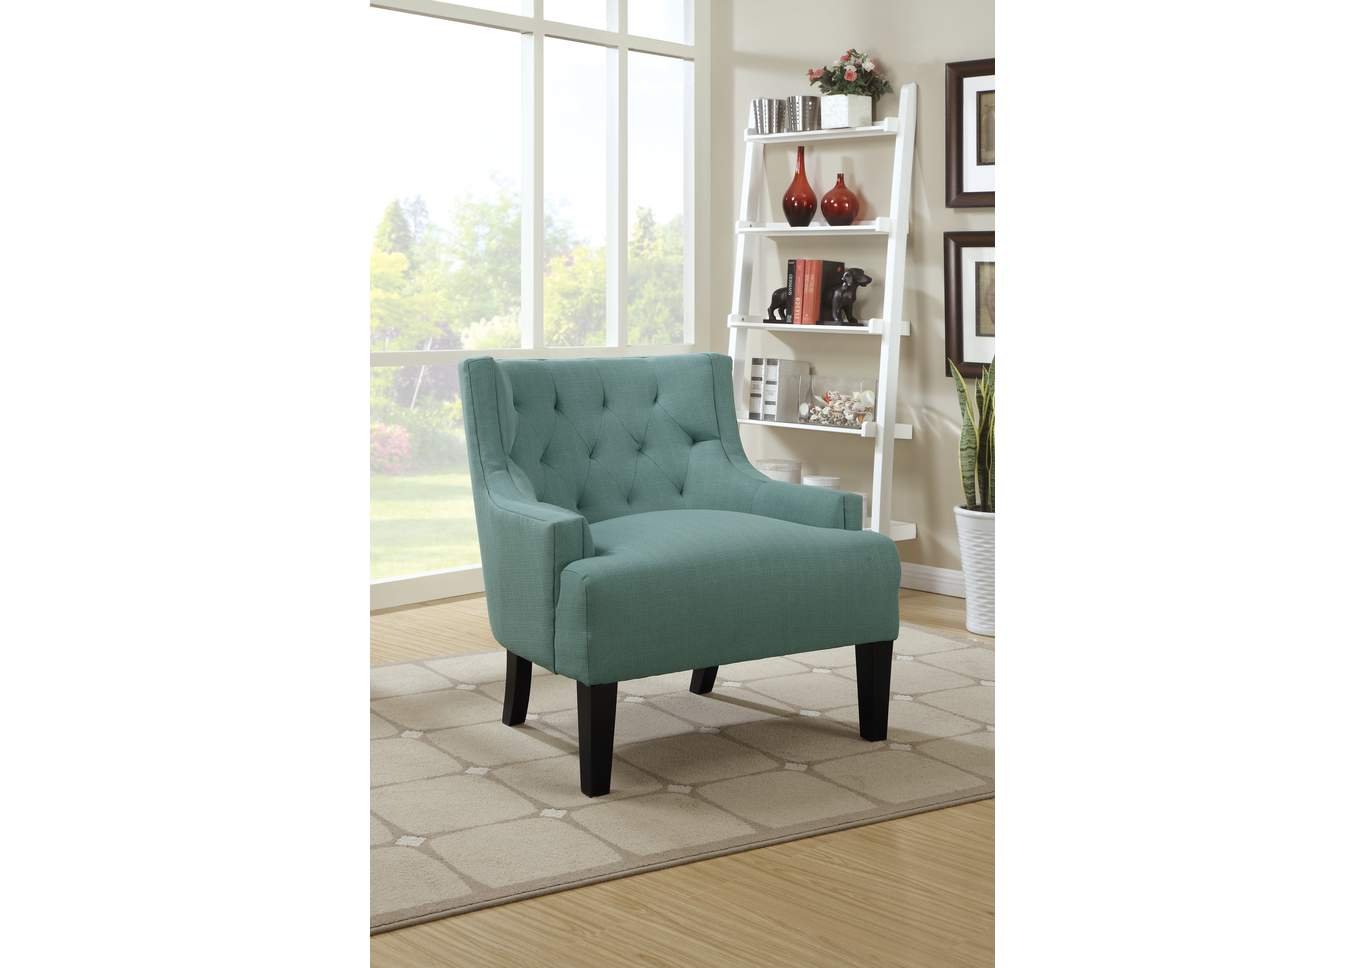 Light Blue Accent Chair,Poundex